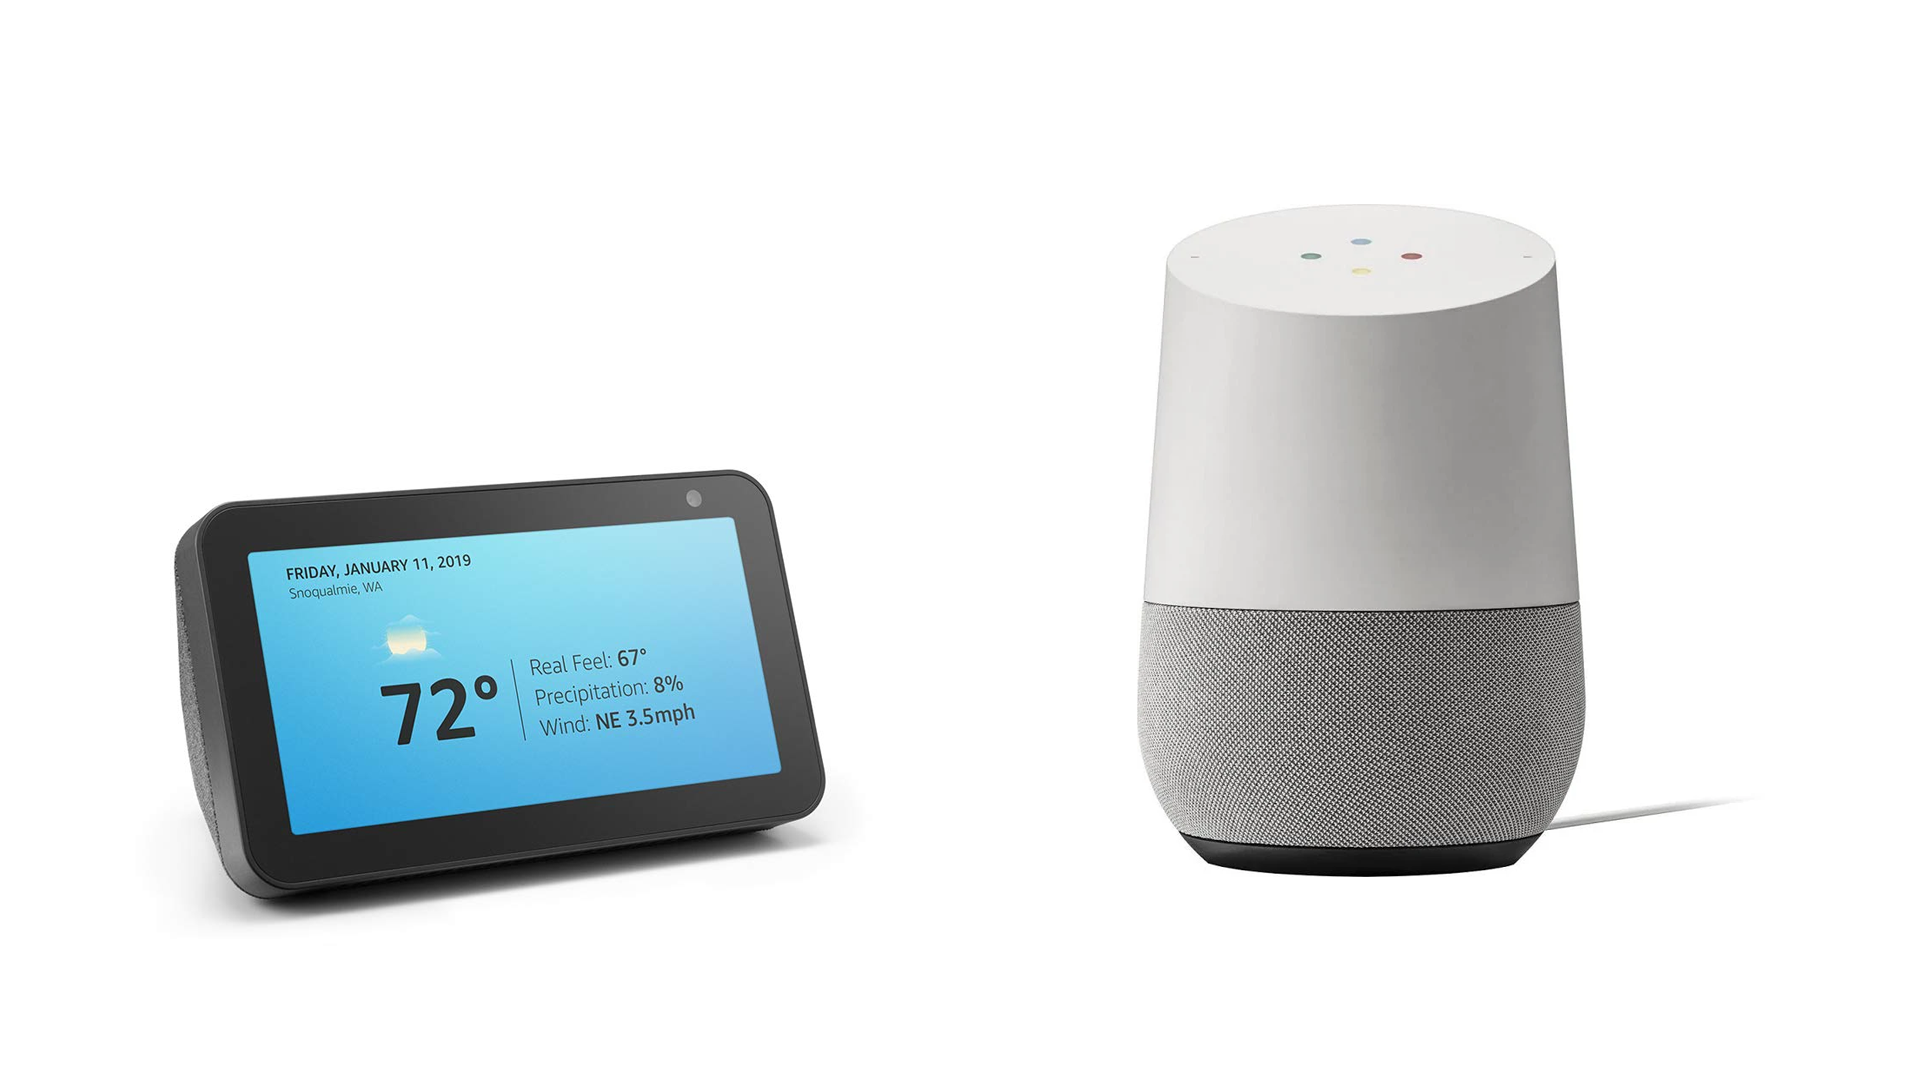 The Echo Show 5 and the Google Home